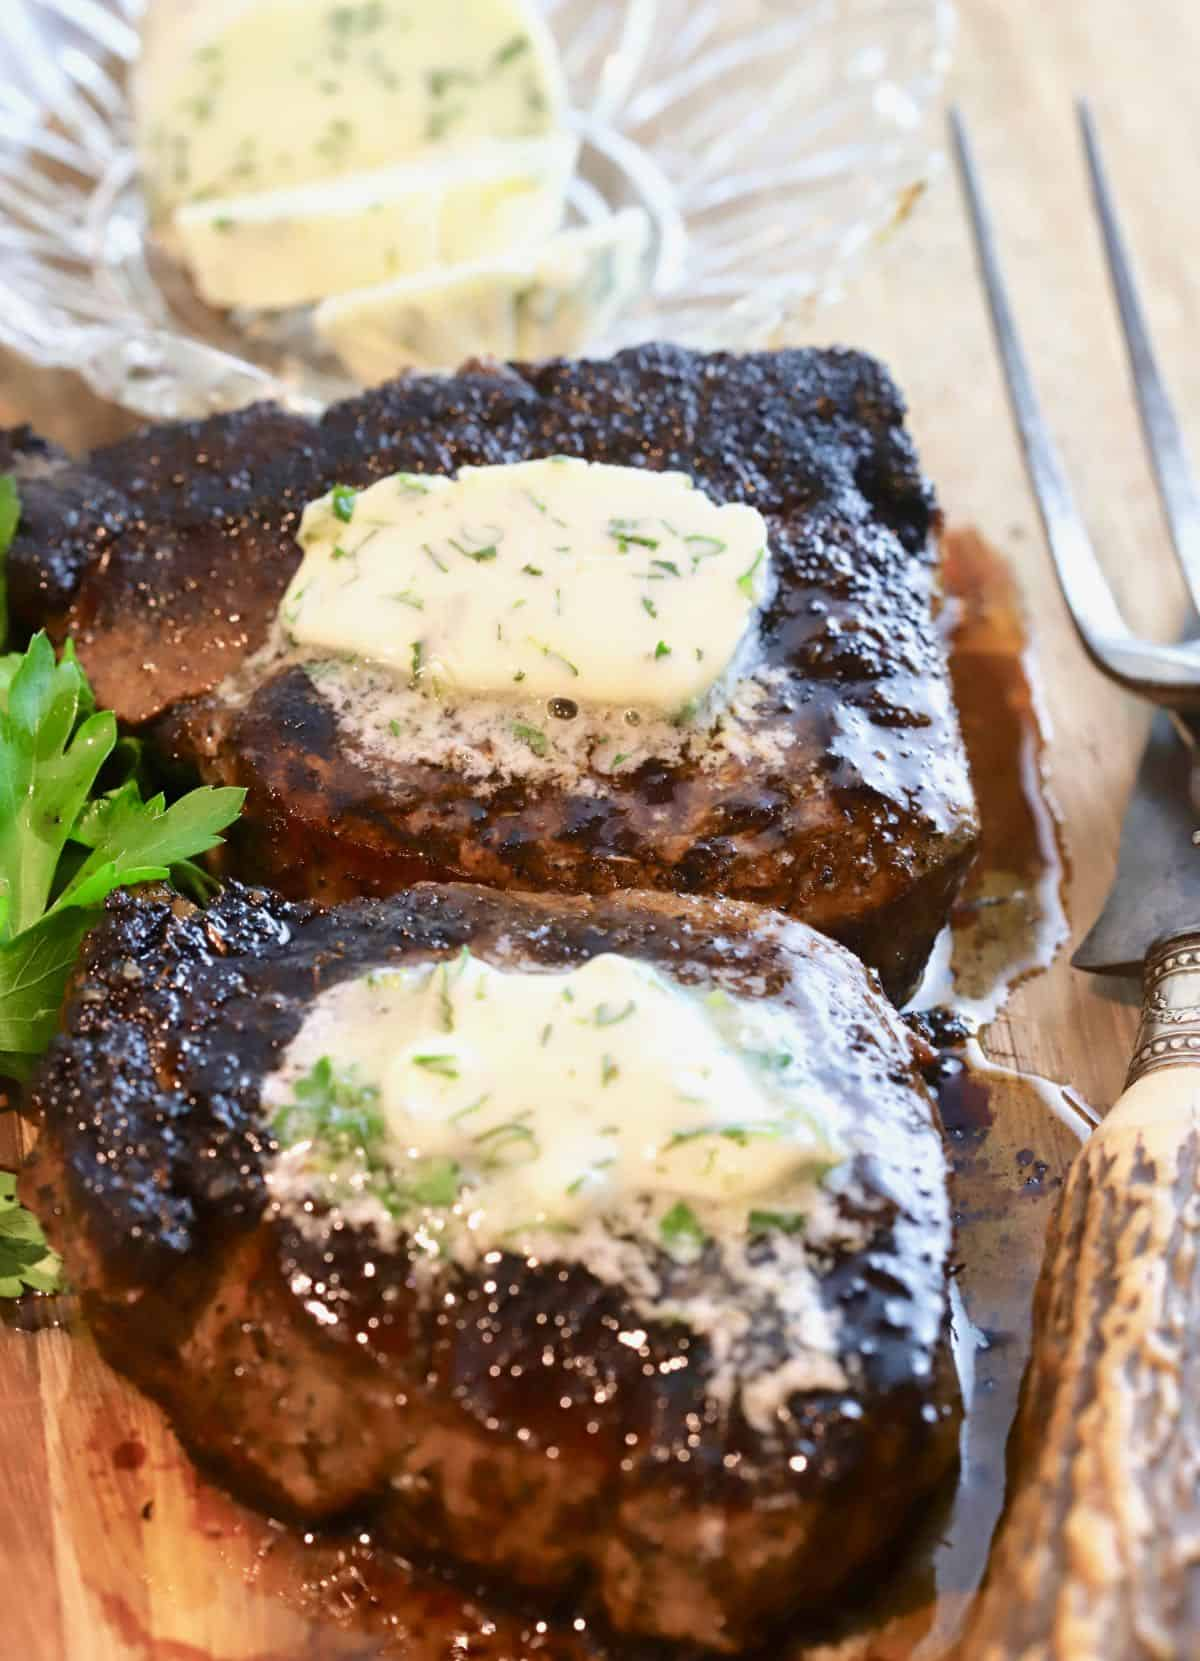 Two blackened steaks topped with garlic herb butter.